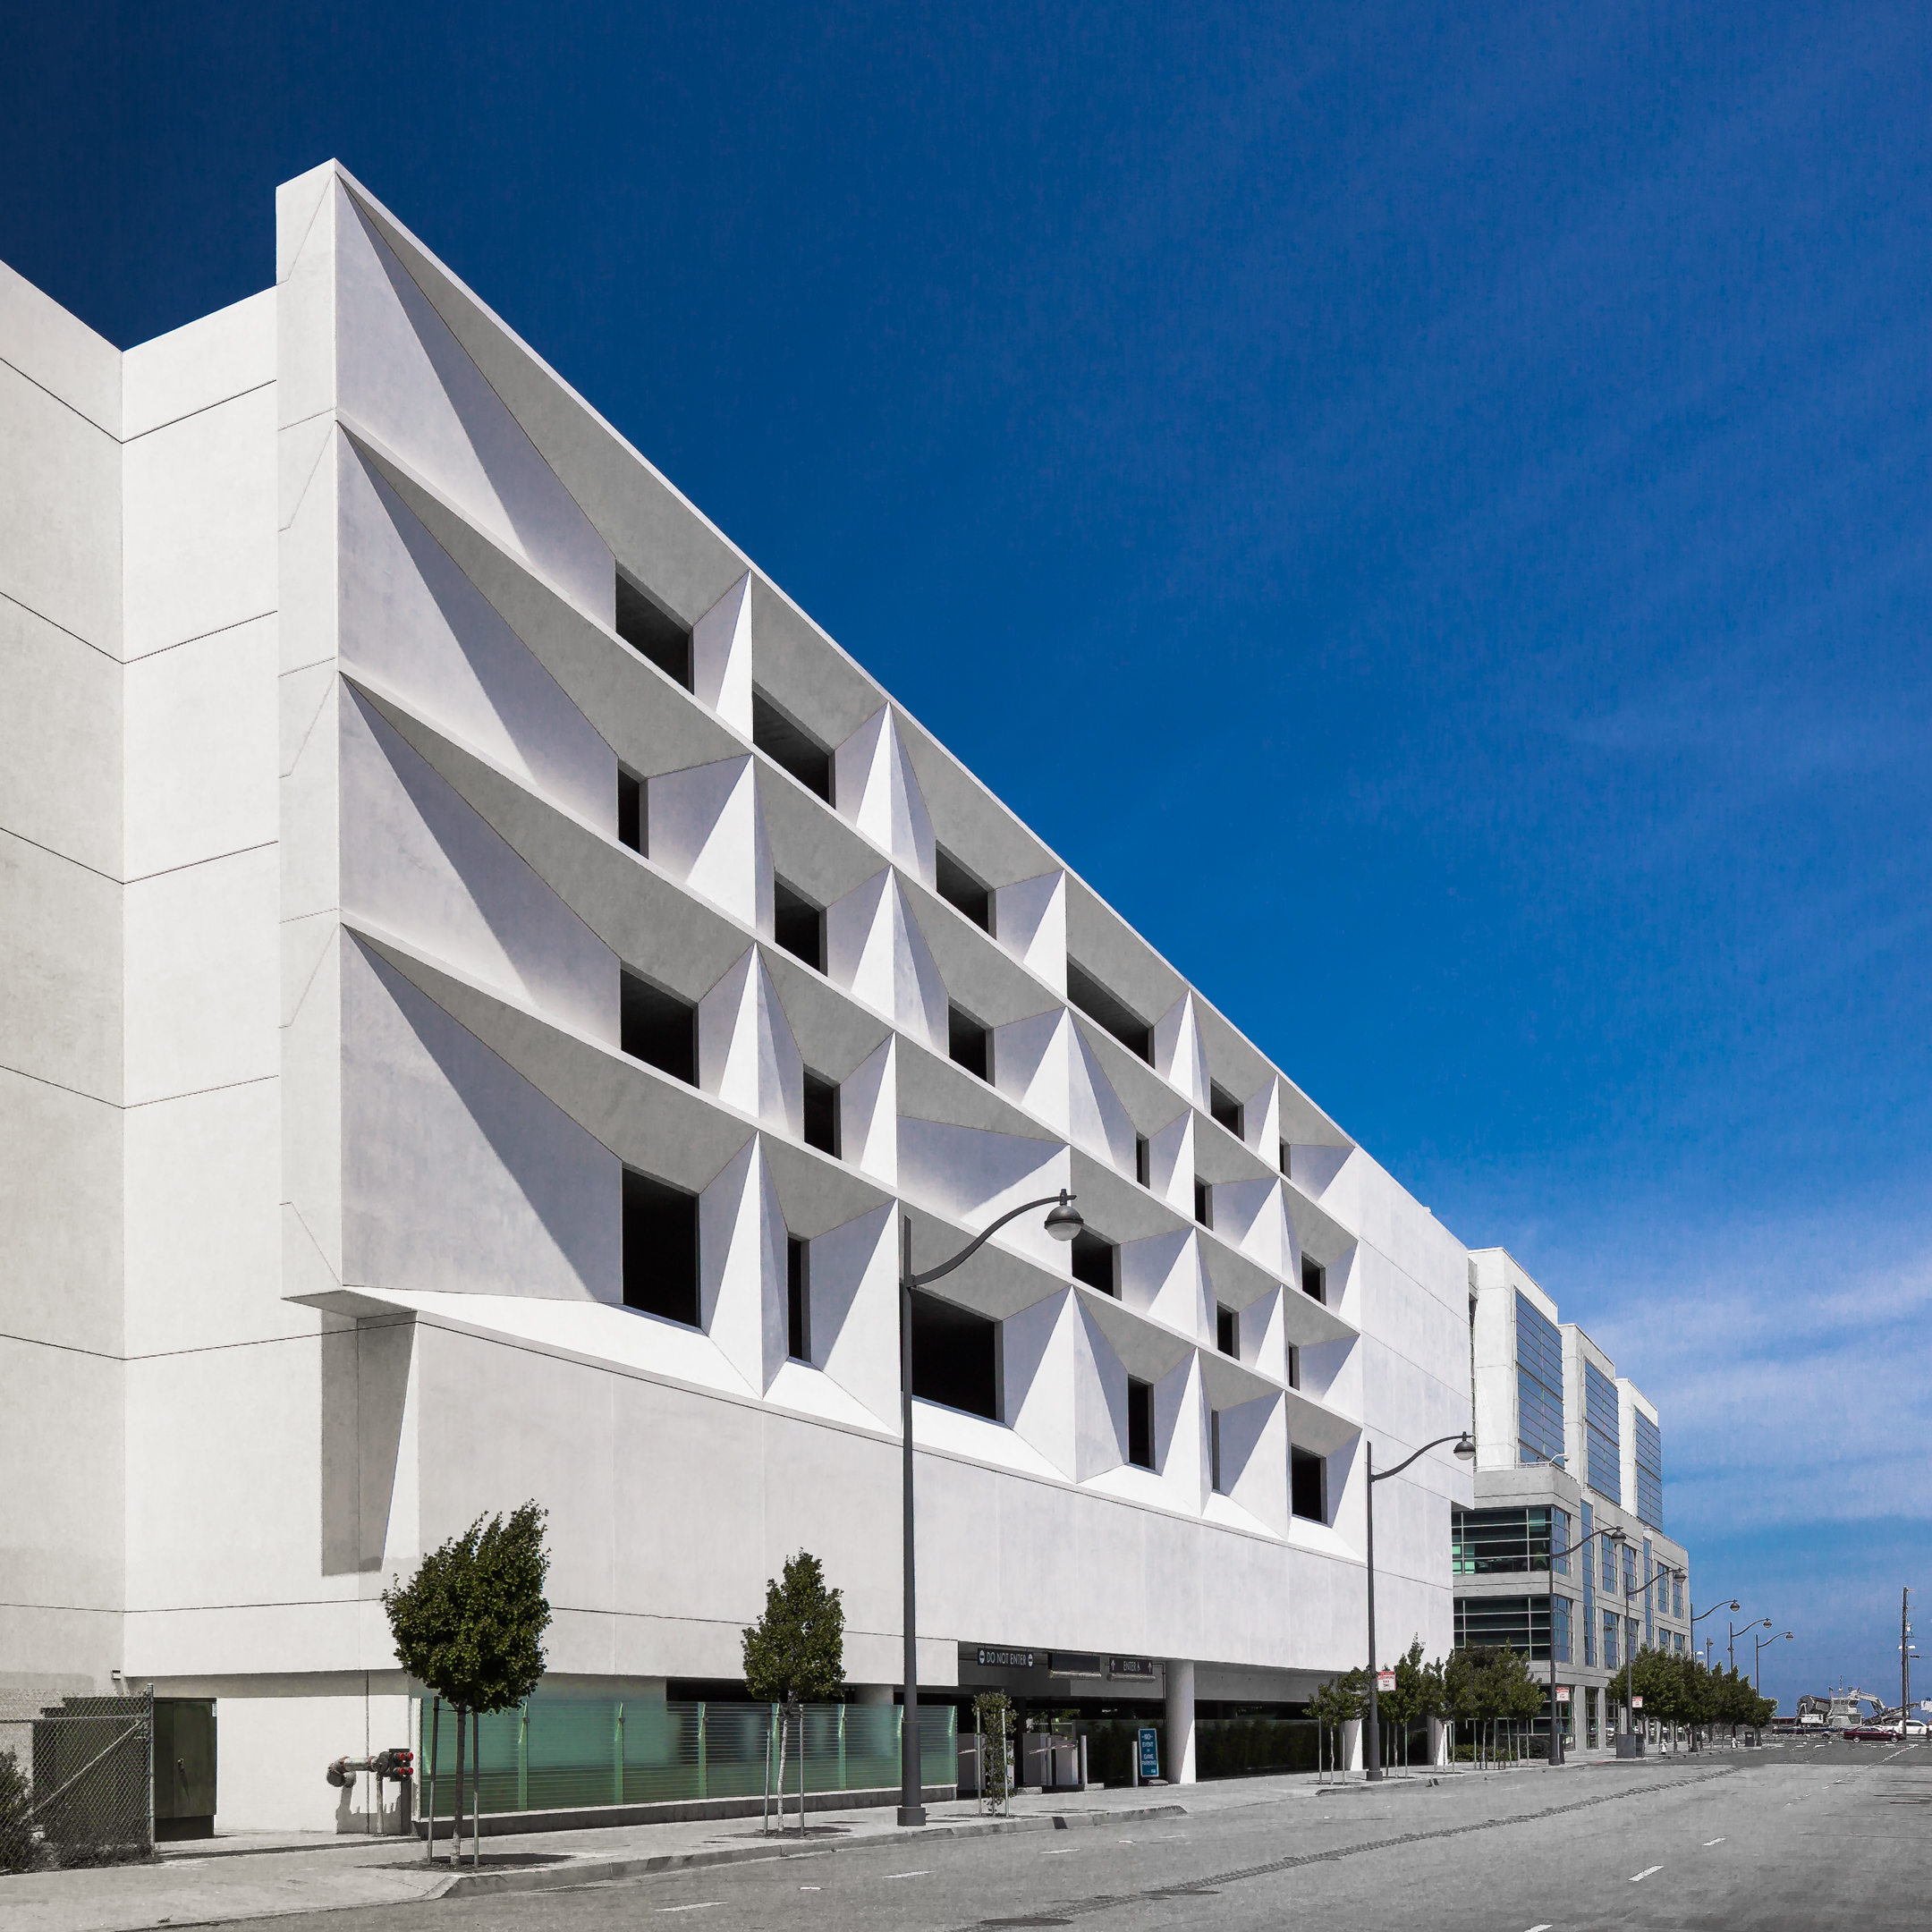 Parking Structure Mission Bay